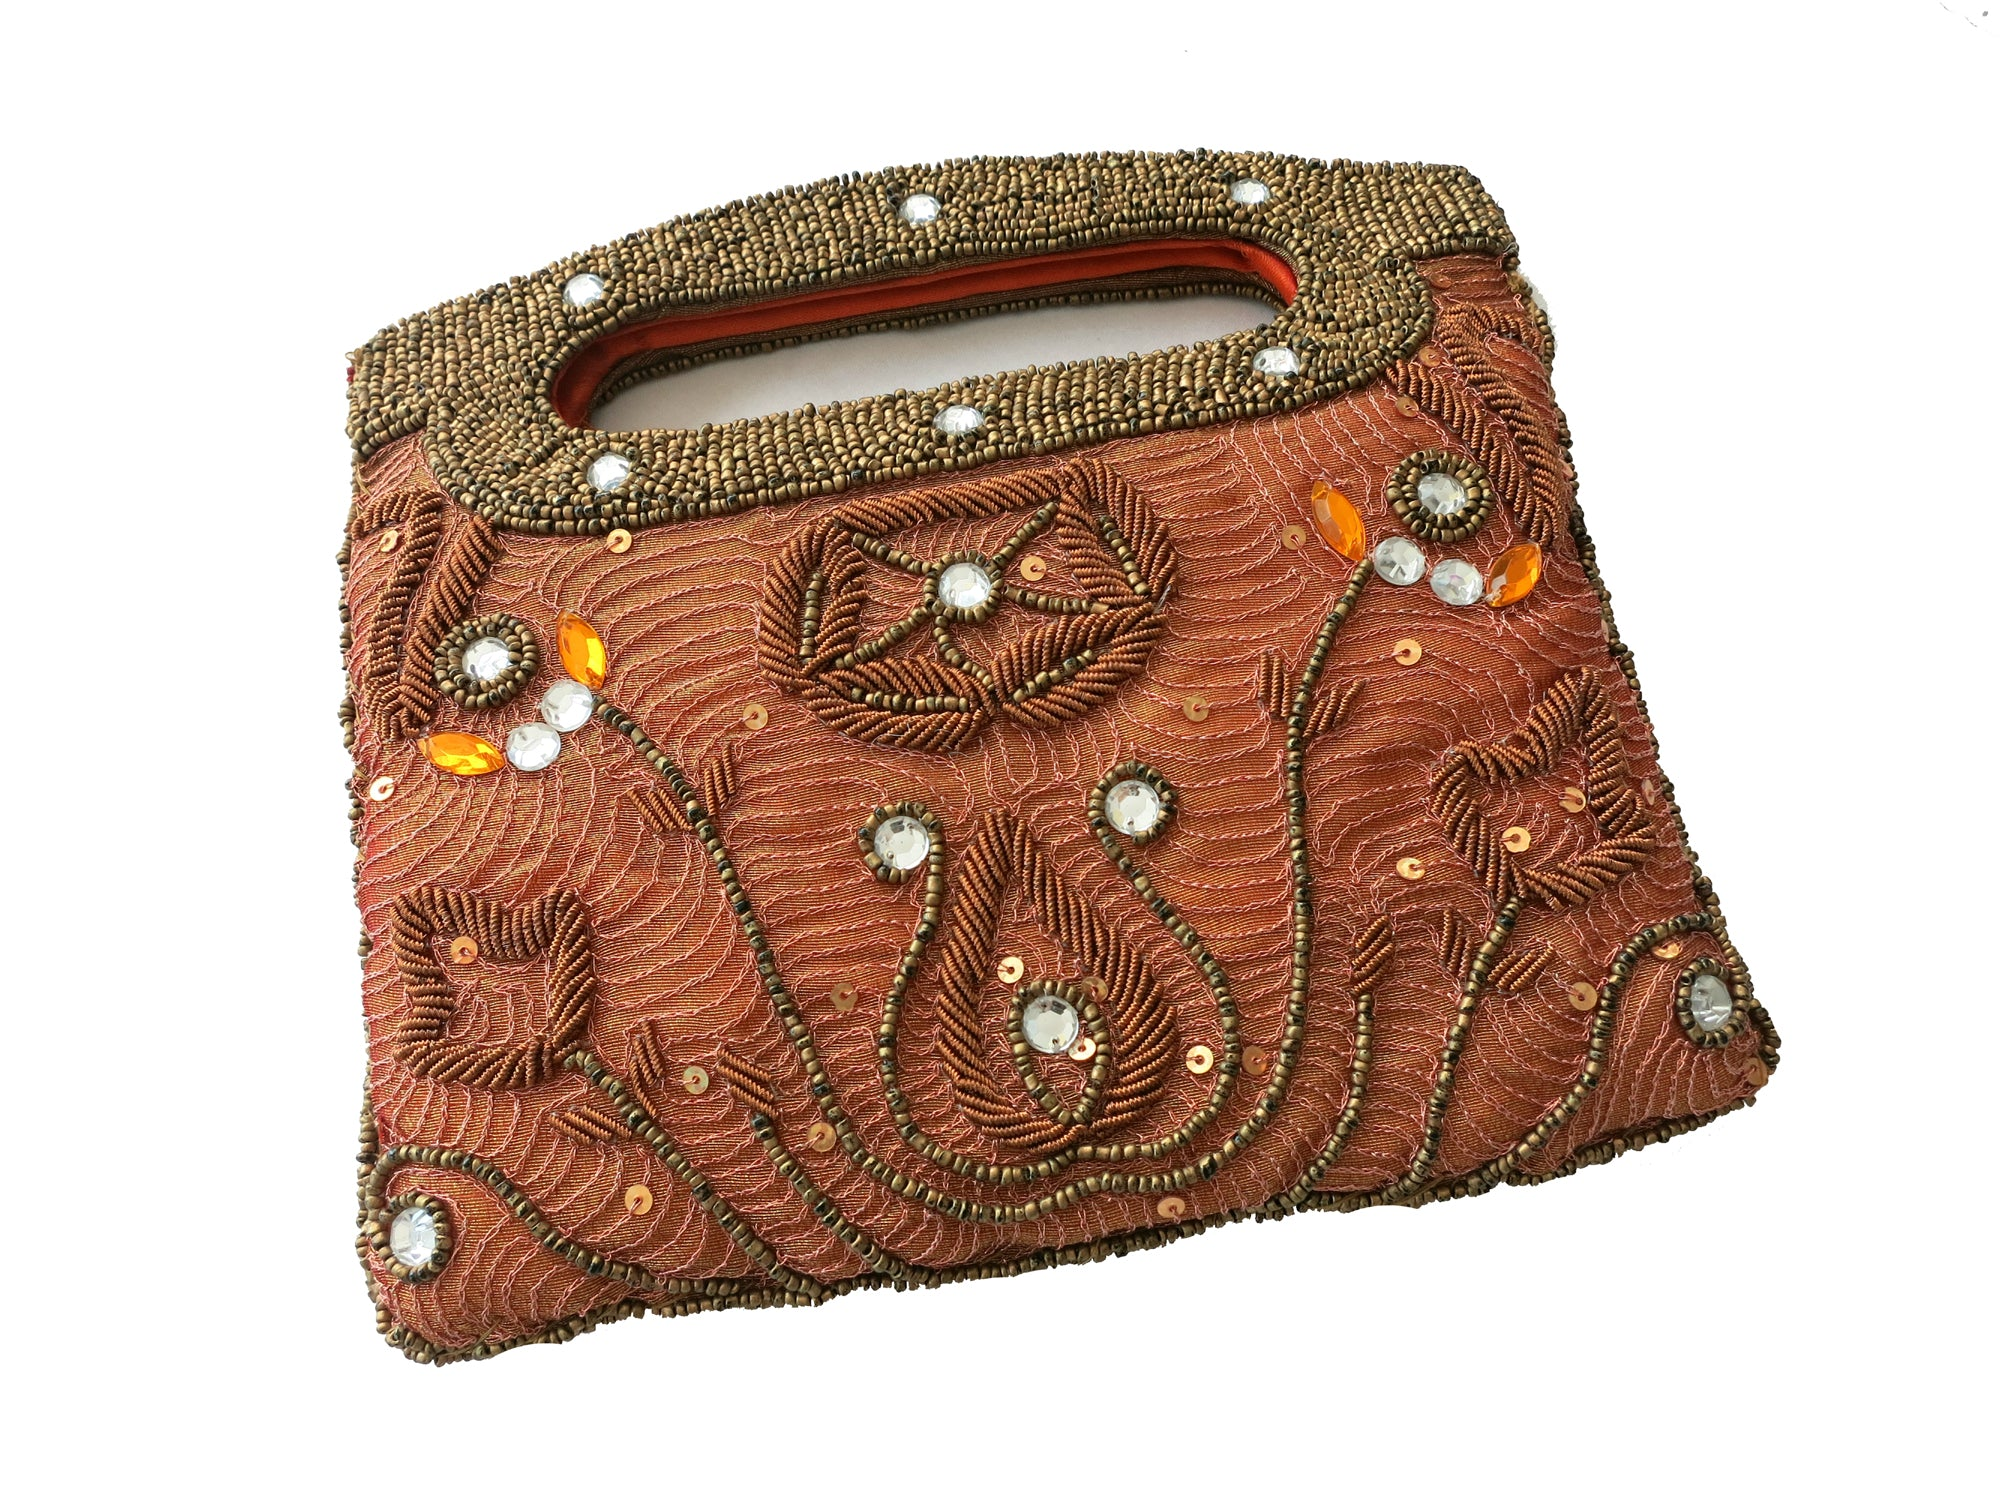 Zardozi Embroidered Clutch